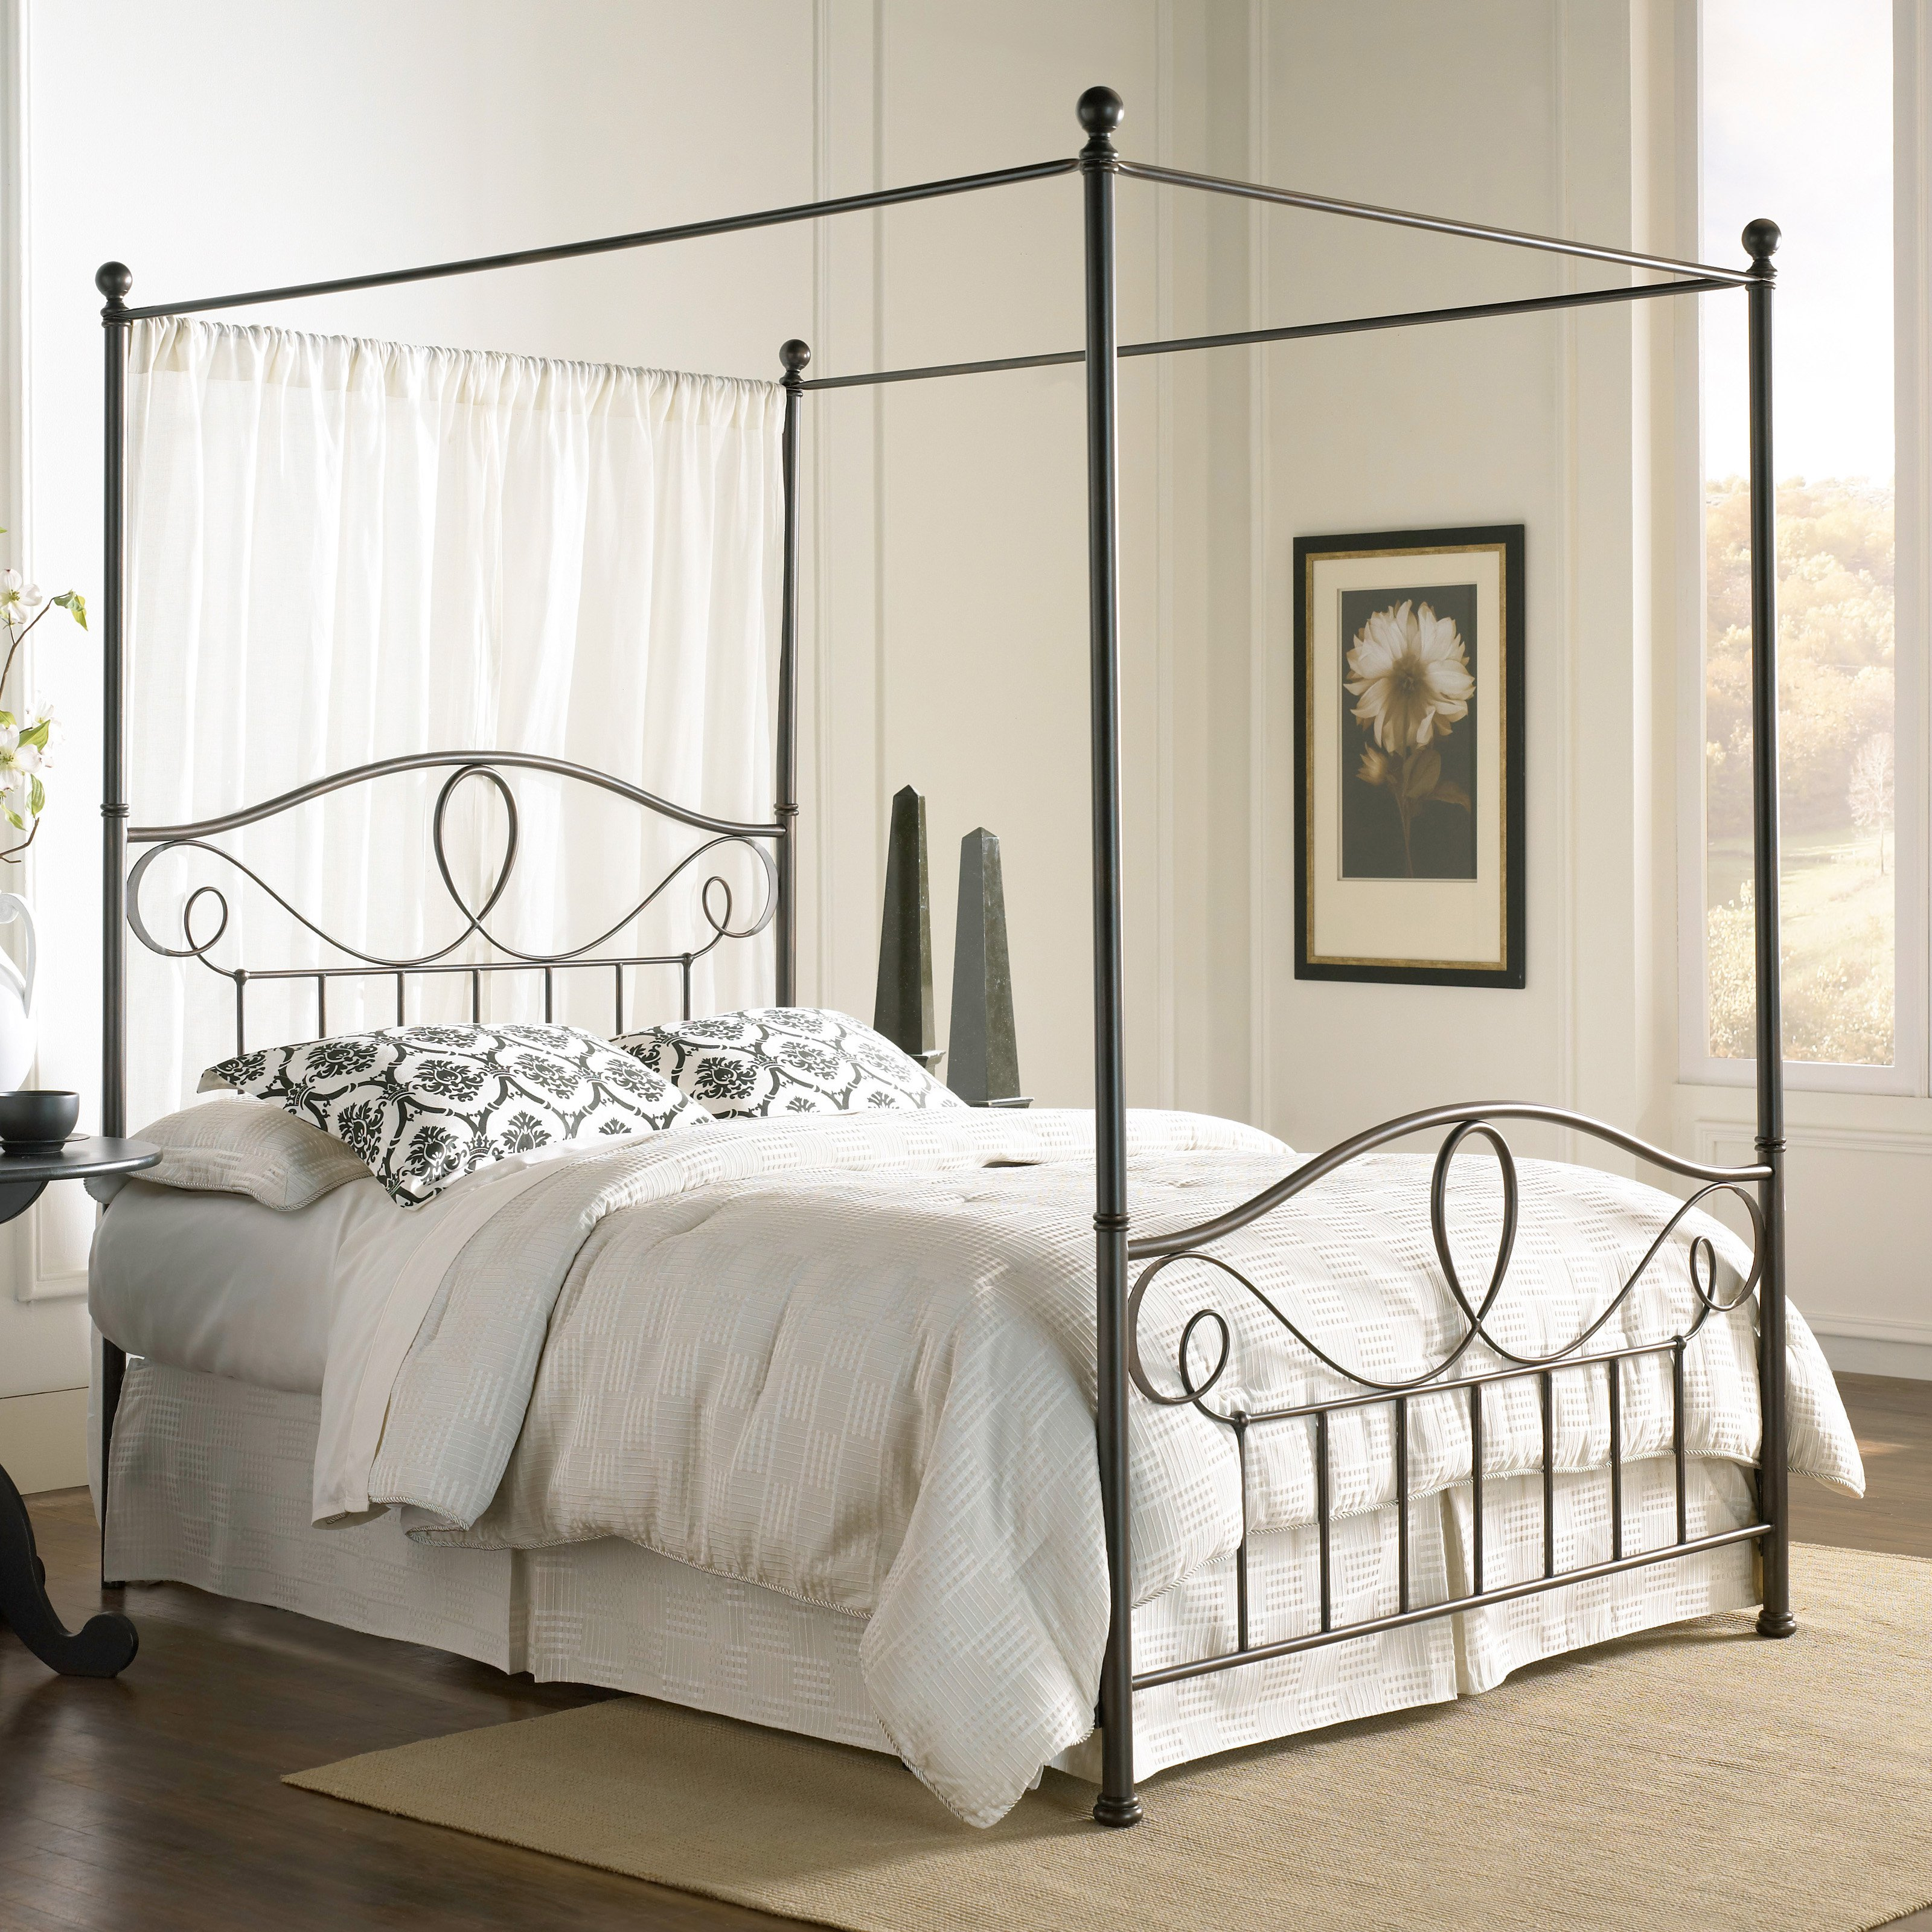 Fashion Bed Group Sylvania Canopy Bed